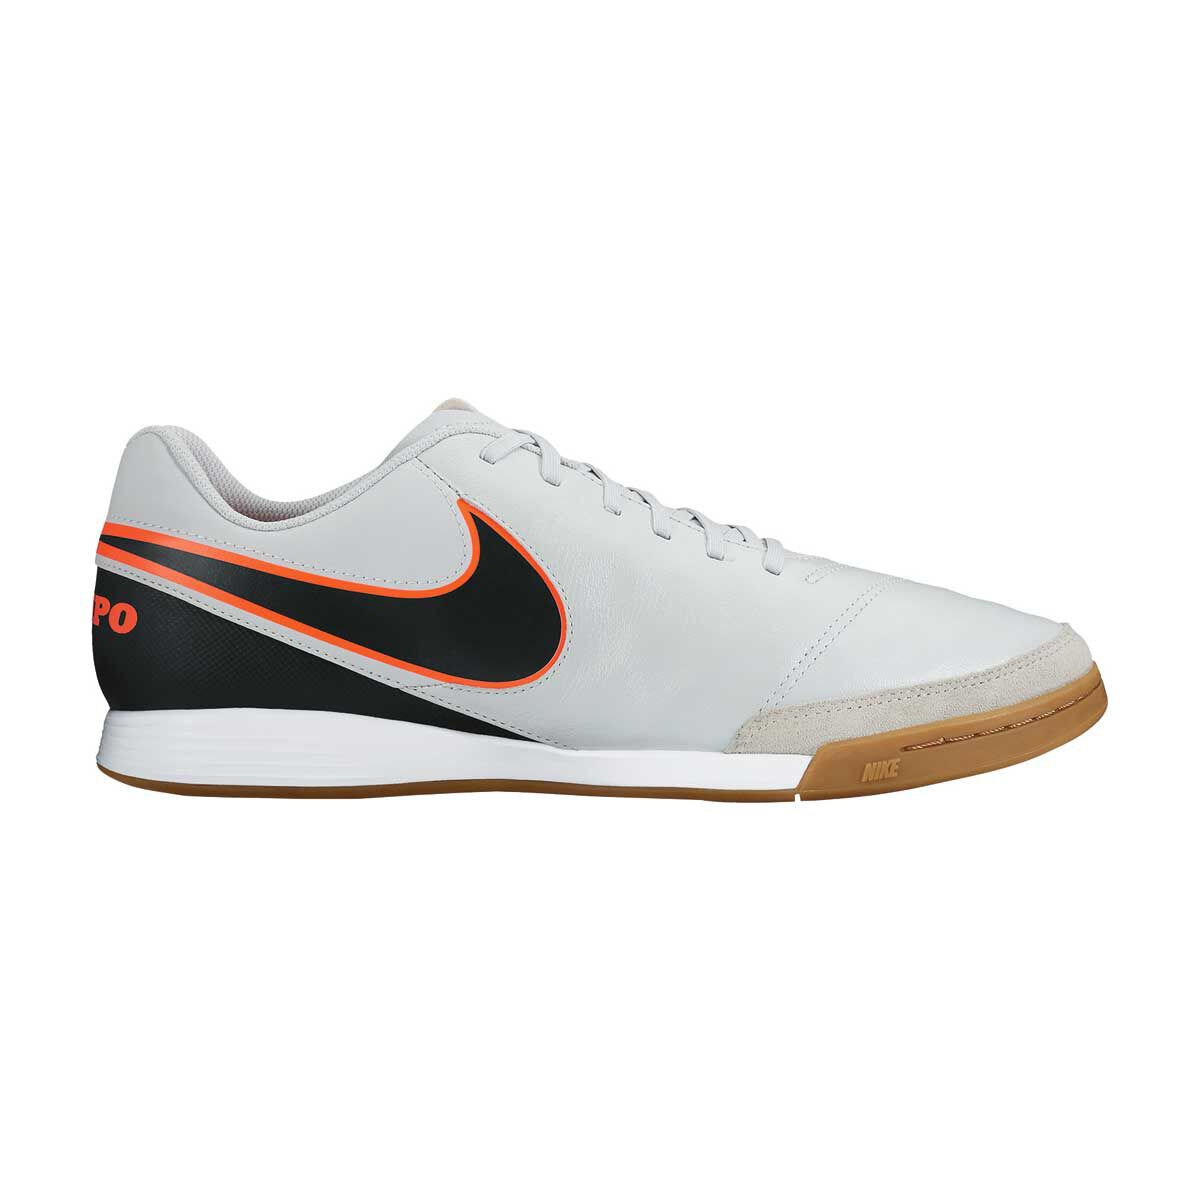 8 Soccer Shoes Ii Tiempo White Nike Mens Genio Leather Indoor Us xR4HHqvw